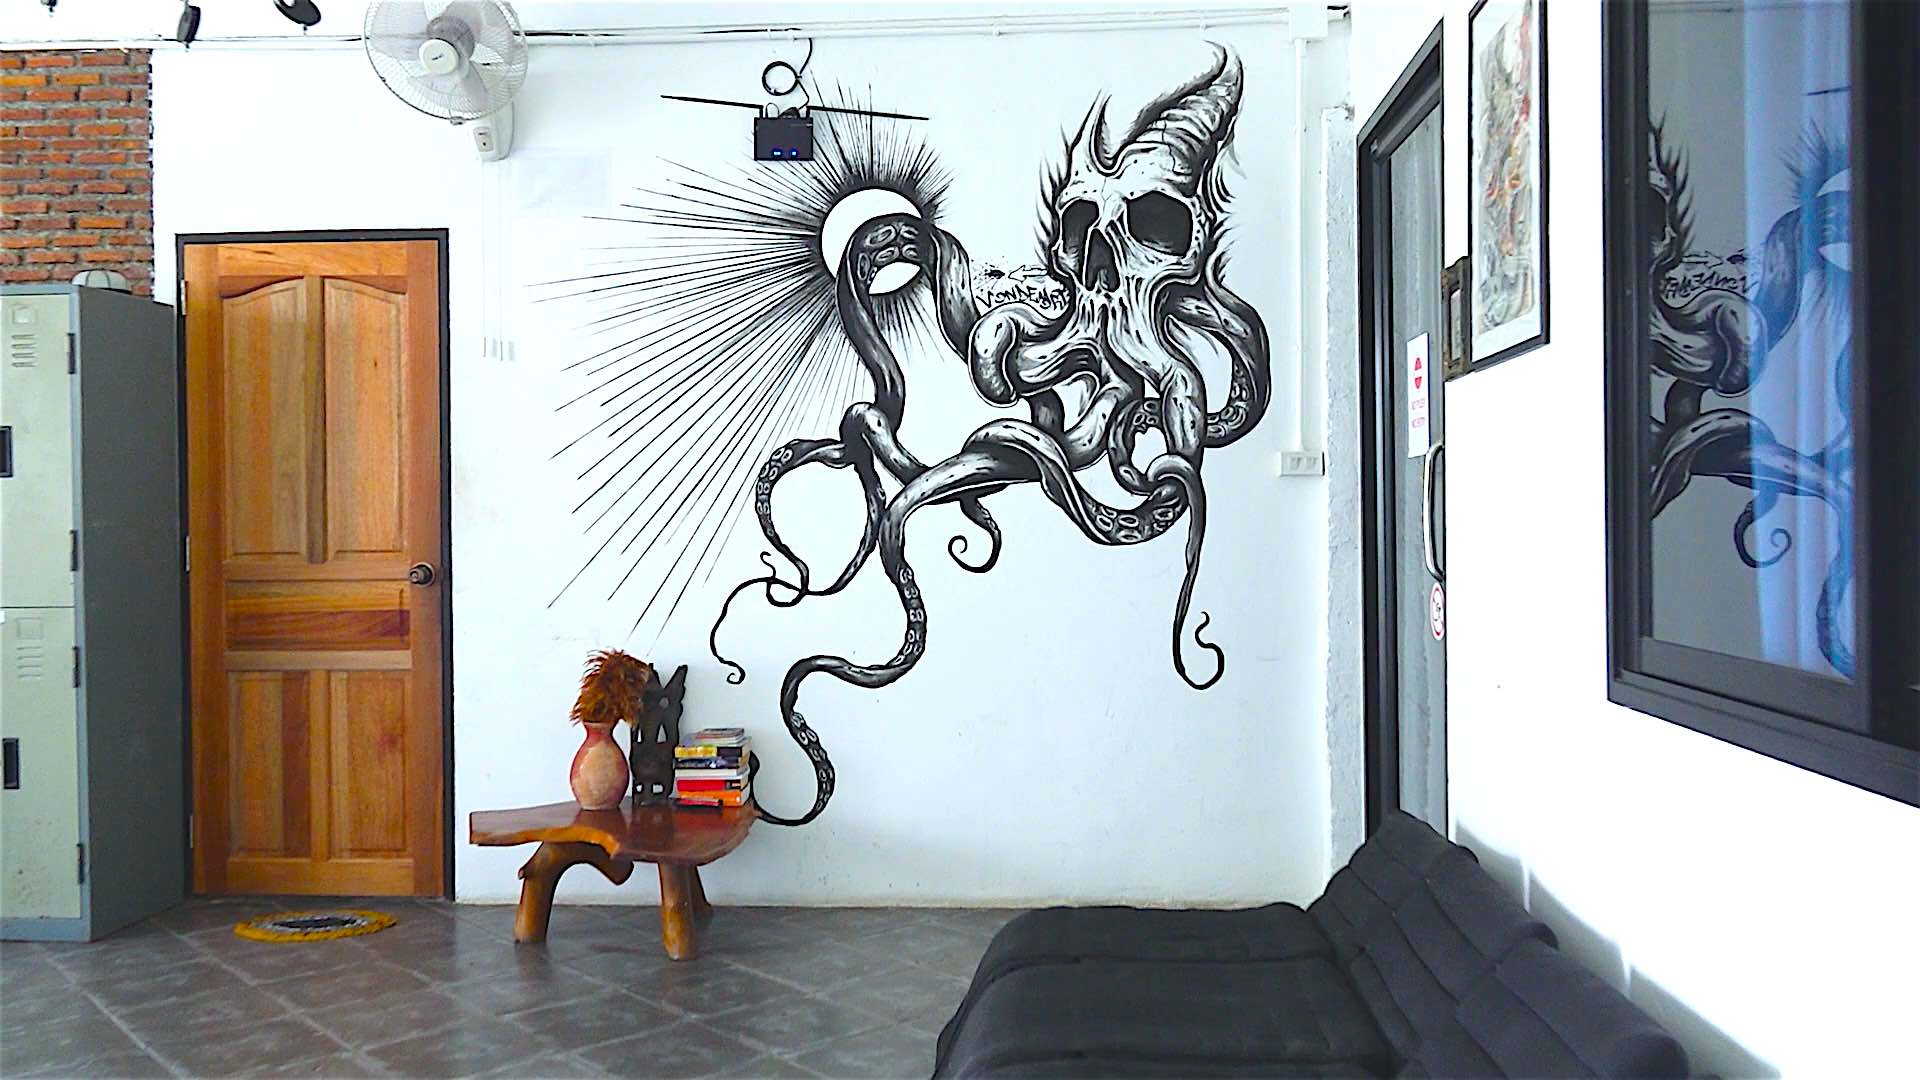 www.thefunkyturtle.com bed and ink hostel koh tao art decor